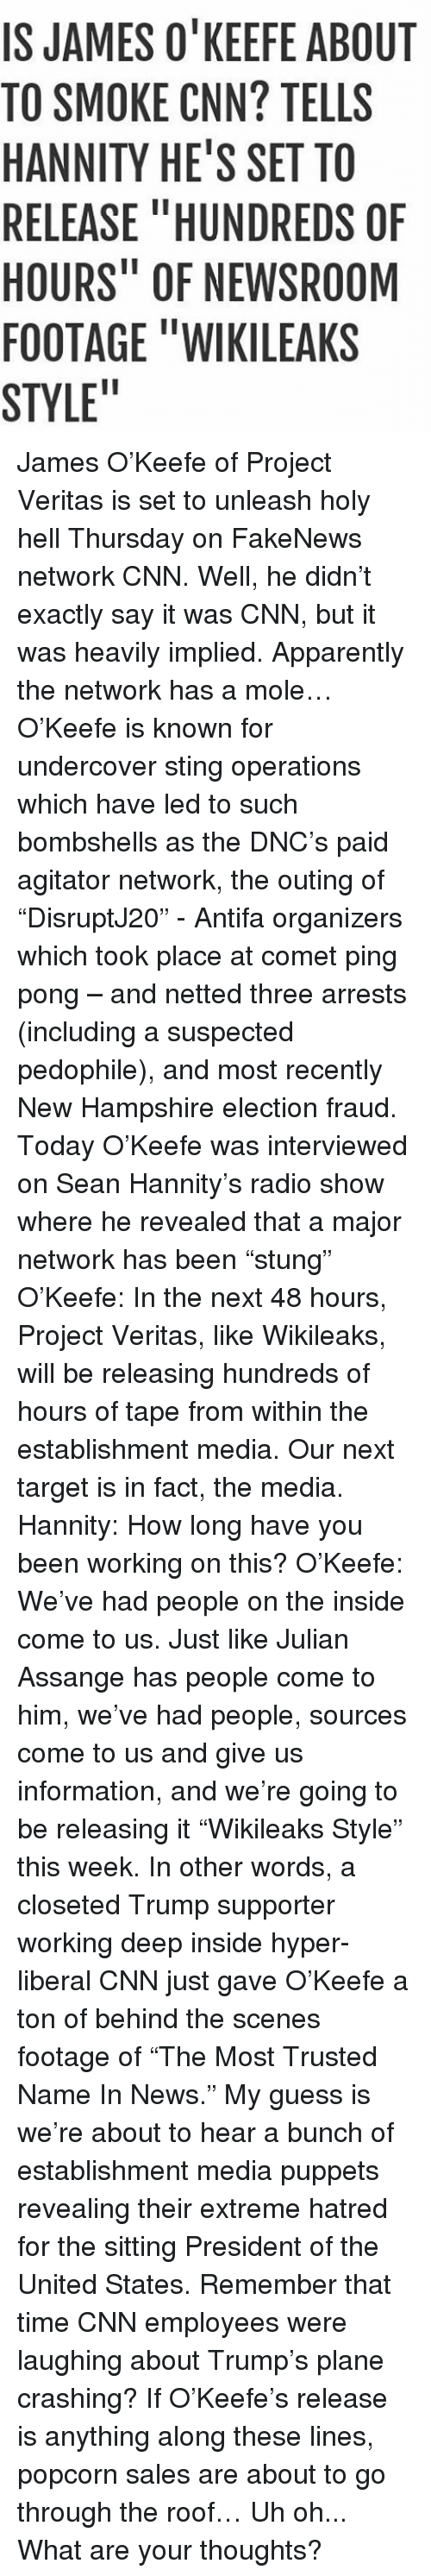 """Pedophillic: IS JAMES O'KEEFE ABOUT  TO SMOKE CNN? TELLS  HANNITY HE'S SETTO  RELEASE """"HUNDREDS OF  HOURS"""" OF NEWSROOM  FOOTAGE """"WIKILEAKS  STYLE"""" James O'Keefe of Project Veritas is set to unleash holy hell Thursday on FakeNews network CNN. Well, he didn't exactly say it was CNN, but it was heavily implied. Apparently the network has a mole… O'Keefe is known for undercover sting operations which have led to such bombshells as the DNC's paid agitator network, the outing of """"DisruptJ20"""" - Antifa organizers which took place at comet ping pong – and netted three arrests (including a suspected pedophile), and most recently New Hampshire election fraud. Today O'Keefe was interviewed on Sean Hannity's radio show where he revealed that a major network has been """"stung"""" O'Keefe: In the next 48 hours, Project Veritas, like Wikileaks, will be releasing hundreds of hours of tape from within the establishment media. Our next target is in fact, the media. Hannity: How long have you been working on this? O'Keefe: We've had people on the inside come to us. Just like Julian Assange has people come to him, we've had people, sources come to us and give us information, and we're going to be releasing it """"Wikileaks Style"""" this week. In other words, a closeted Trump supporter working deep inside hyper-liberal CNN just gave O'Keefe a ton of behind the scenes footage of """"The Most Trusted Name In News."""" My guess is we're about to hear a bunch of establishment media puppets revealing their extreme hatred for the sitting President of the United States. Remember that time CNN employees were laughing about Trump's plane crashing? If O'Keefe's release is anything along these lines, popcorn sales are about to go through the roof… Uh oh... What are your thoughts?"""